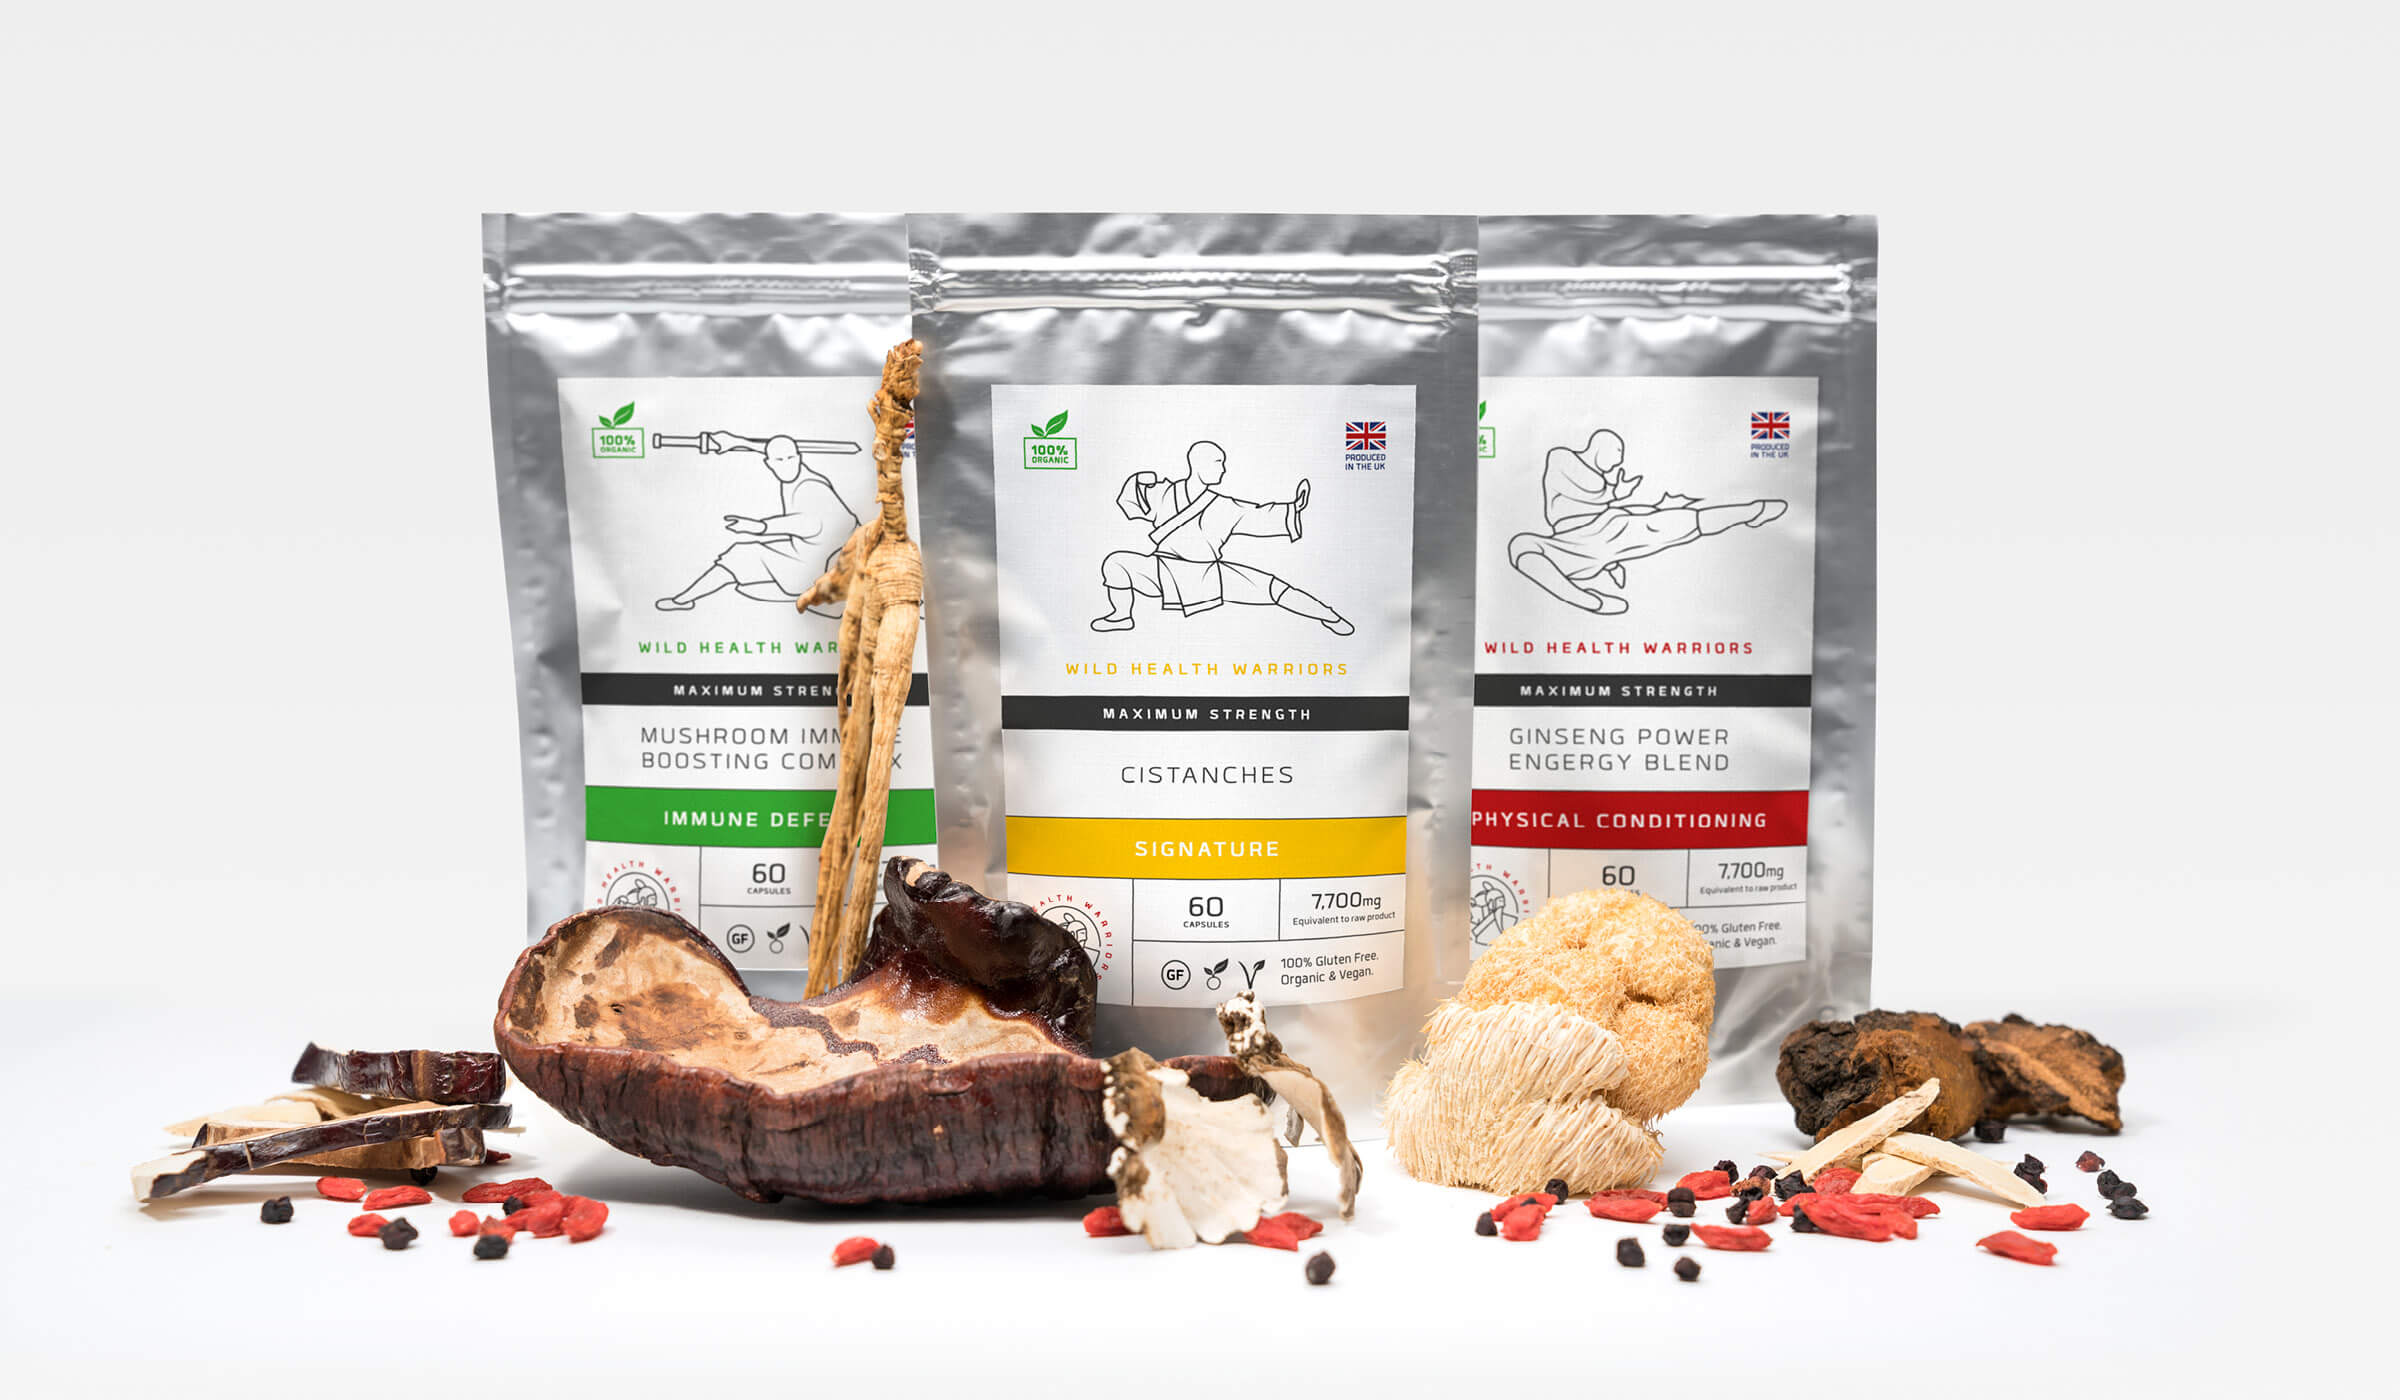 Illustrated branding and packaging design for chinese inspired health supplements manufacturer Wild Health Warriors